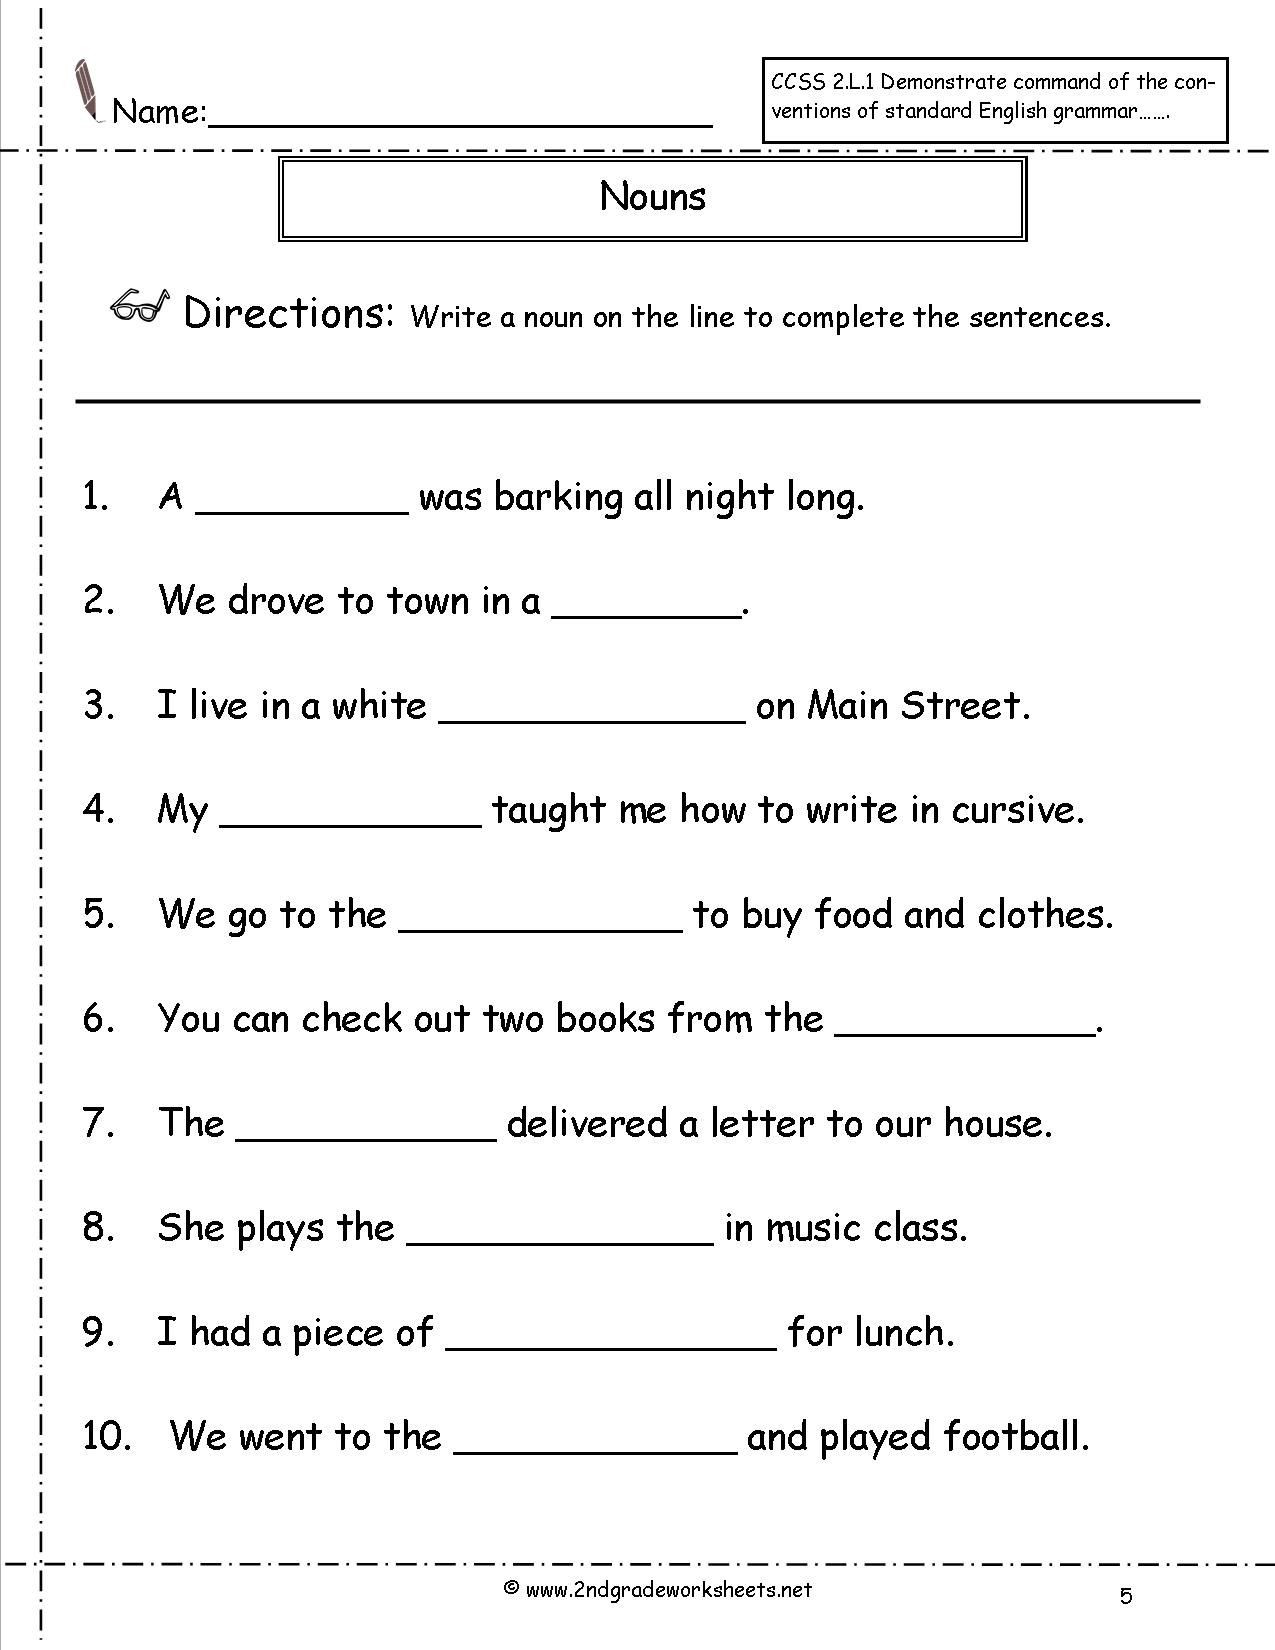 Second Grade Grammar Worksheets Math Worksheet 2nd Grade Grammar Worksheets Math Worksheet